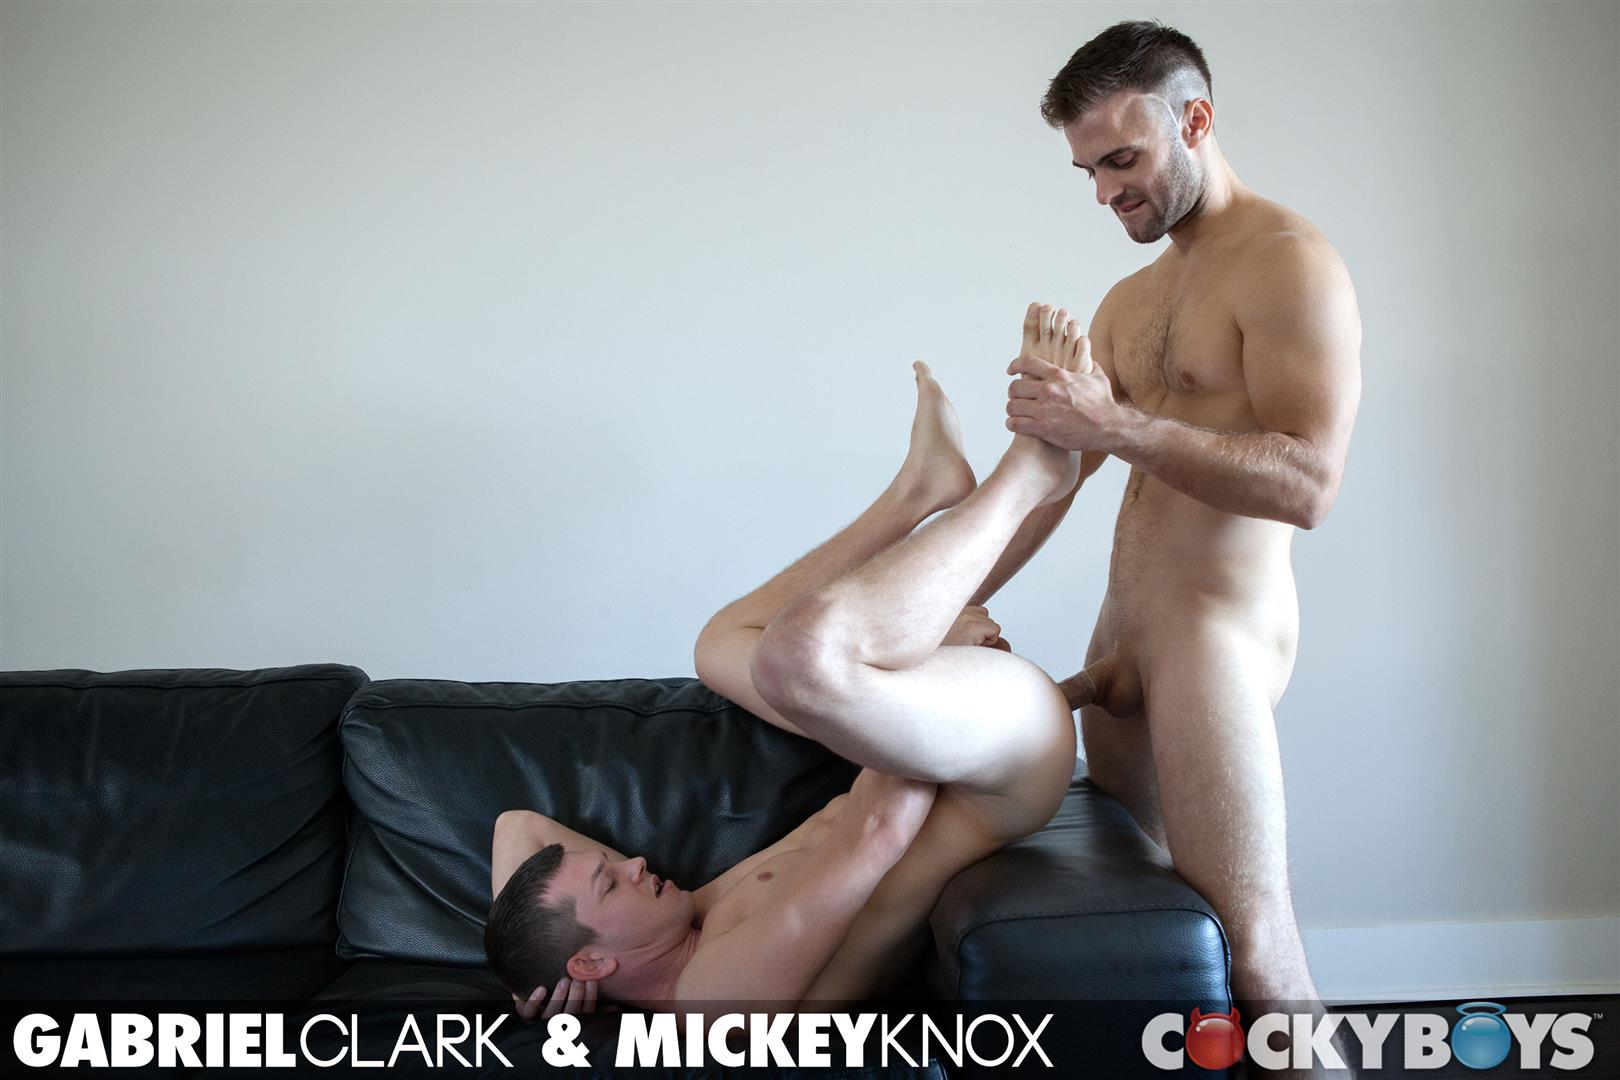 Cockyboys-Mickey-Knox-and-Gabriel-Clark-American-Boys-Thick-Cocks-Fucking-Amateur-Gay-Porn-20 All American Boys Mickey Knox and Gabriel Clark Share A Fuck